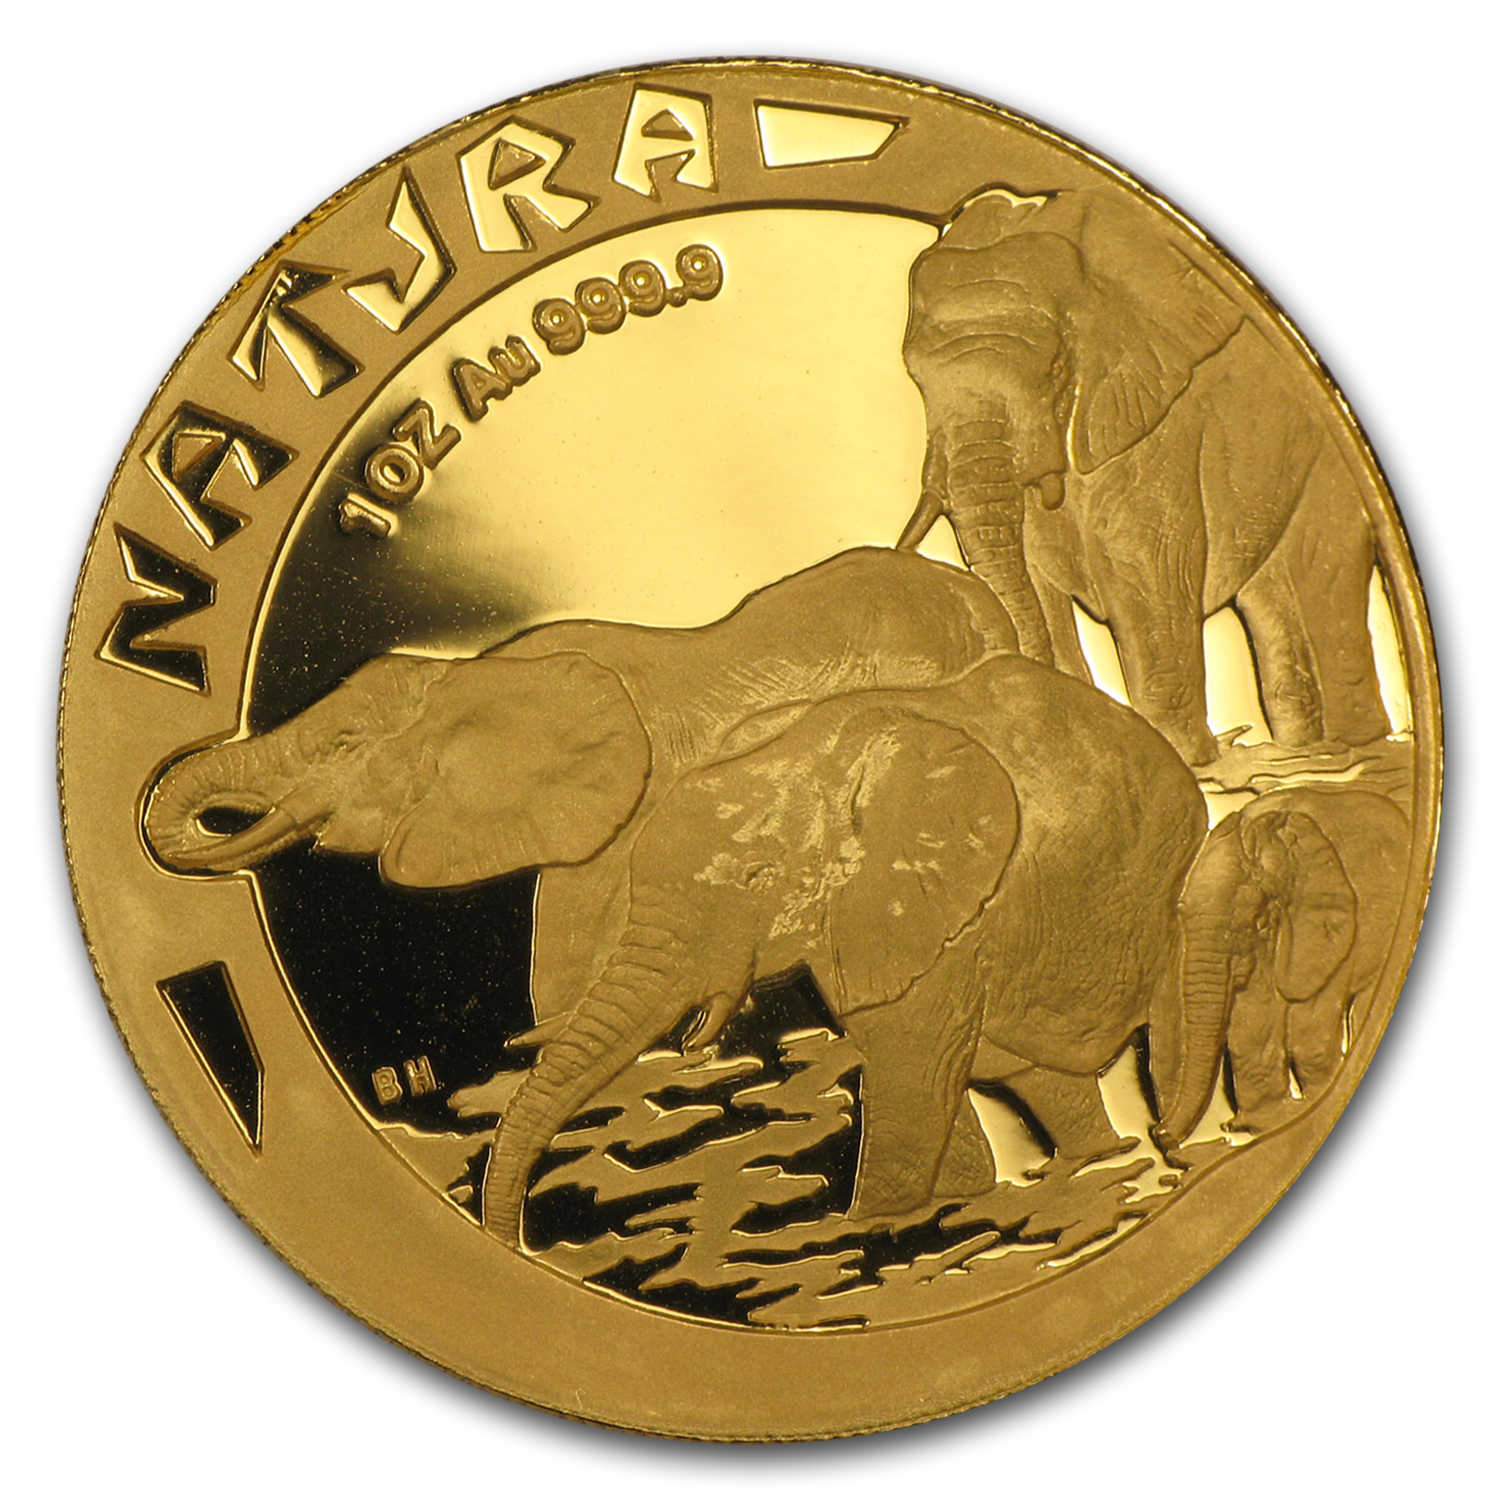 1996 South Africa 1 oz Proof Gold Natura Elephant